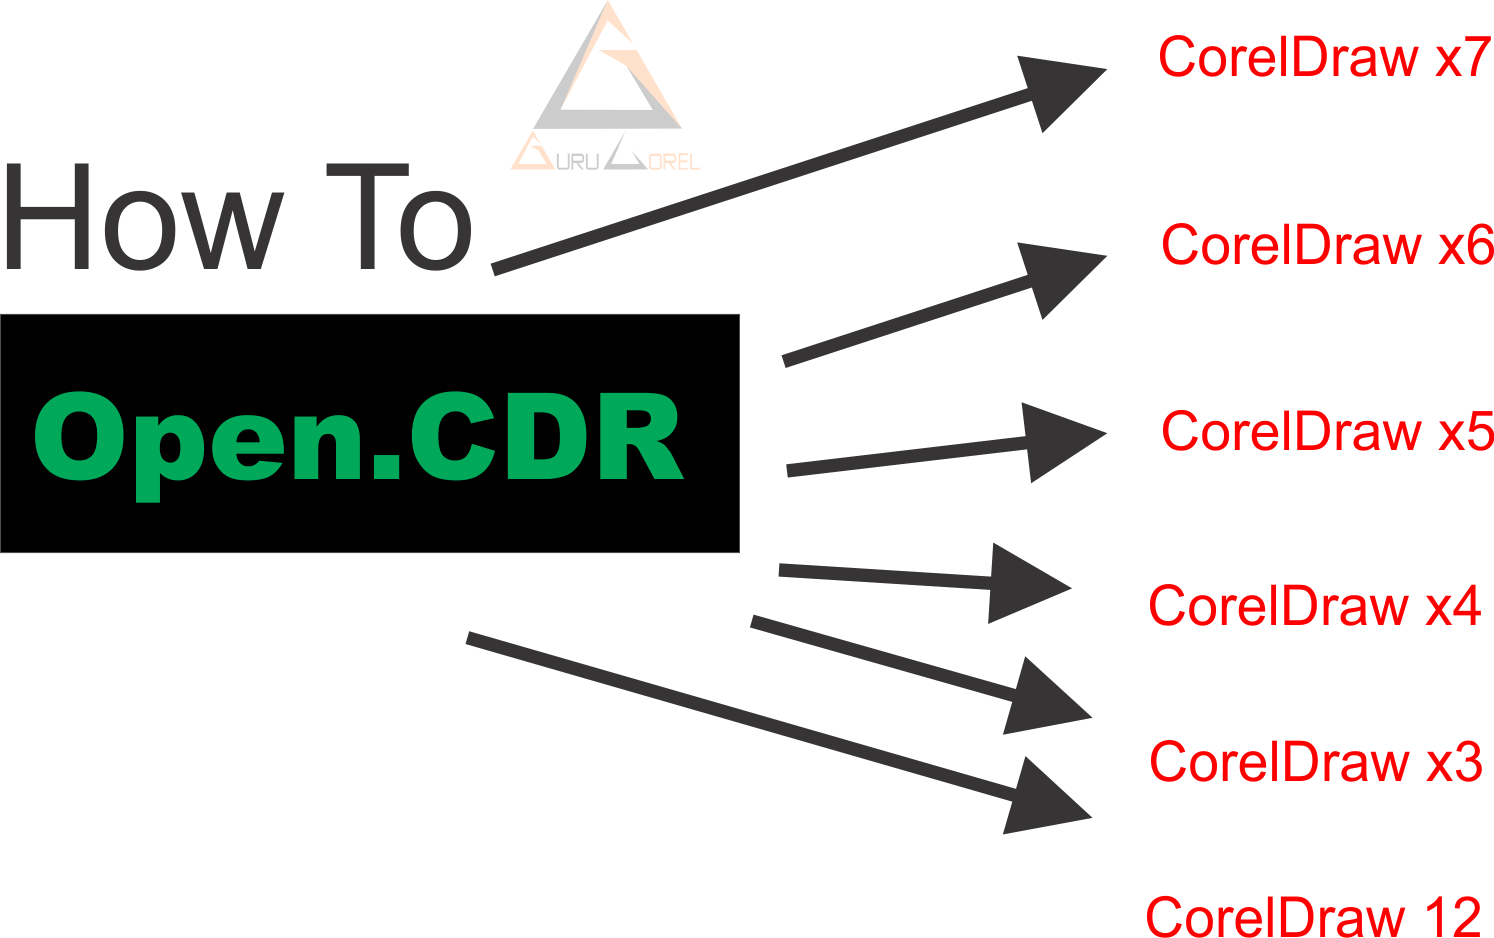 Coreldraw version 12 - Now There Is A New Tutorial That Has The Same Functionality So That Files Could Cdr Opens In Coreldraw All Versions Without Having To Convert File First